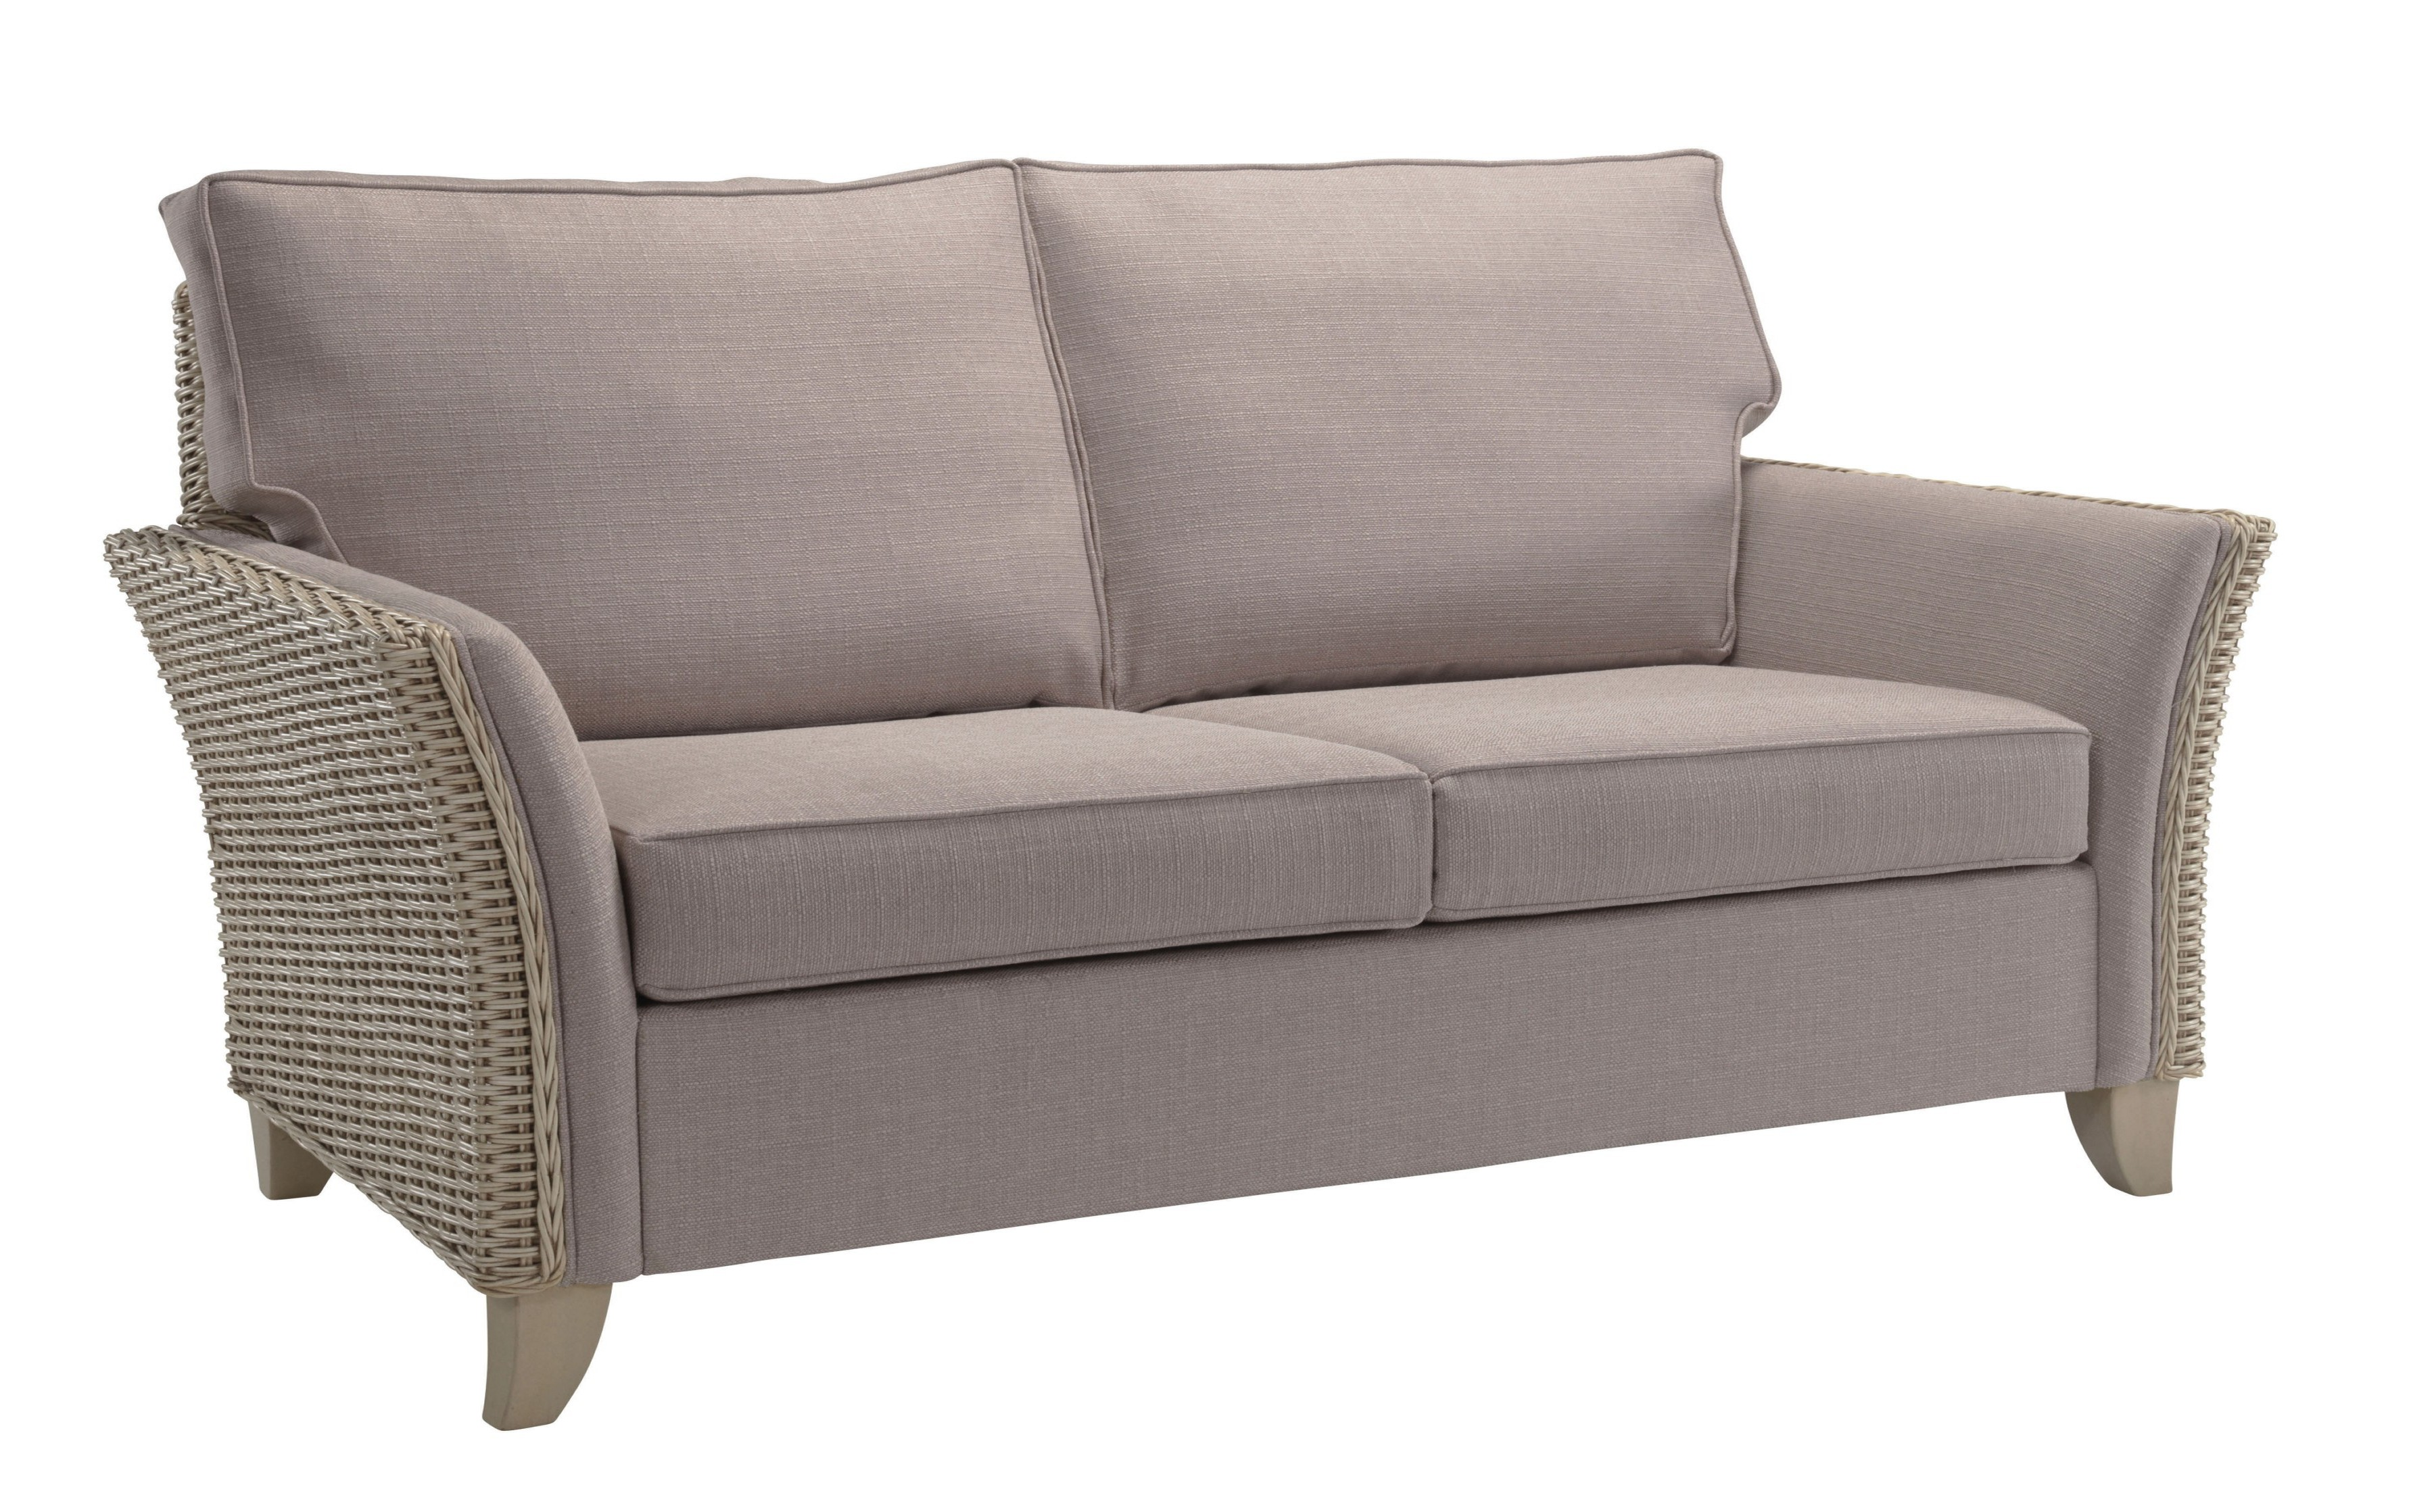 Desser Arlington 3 Seater Sofa